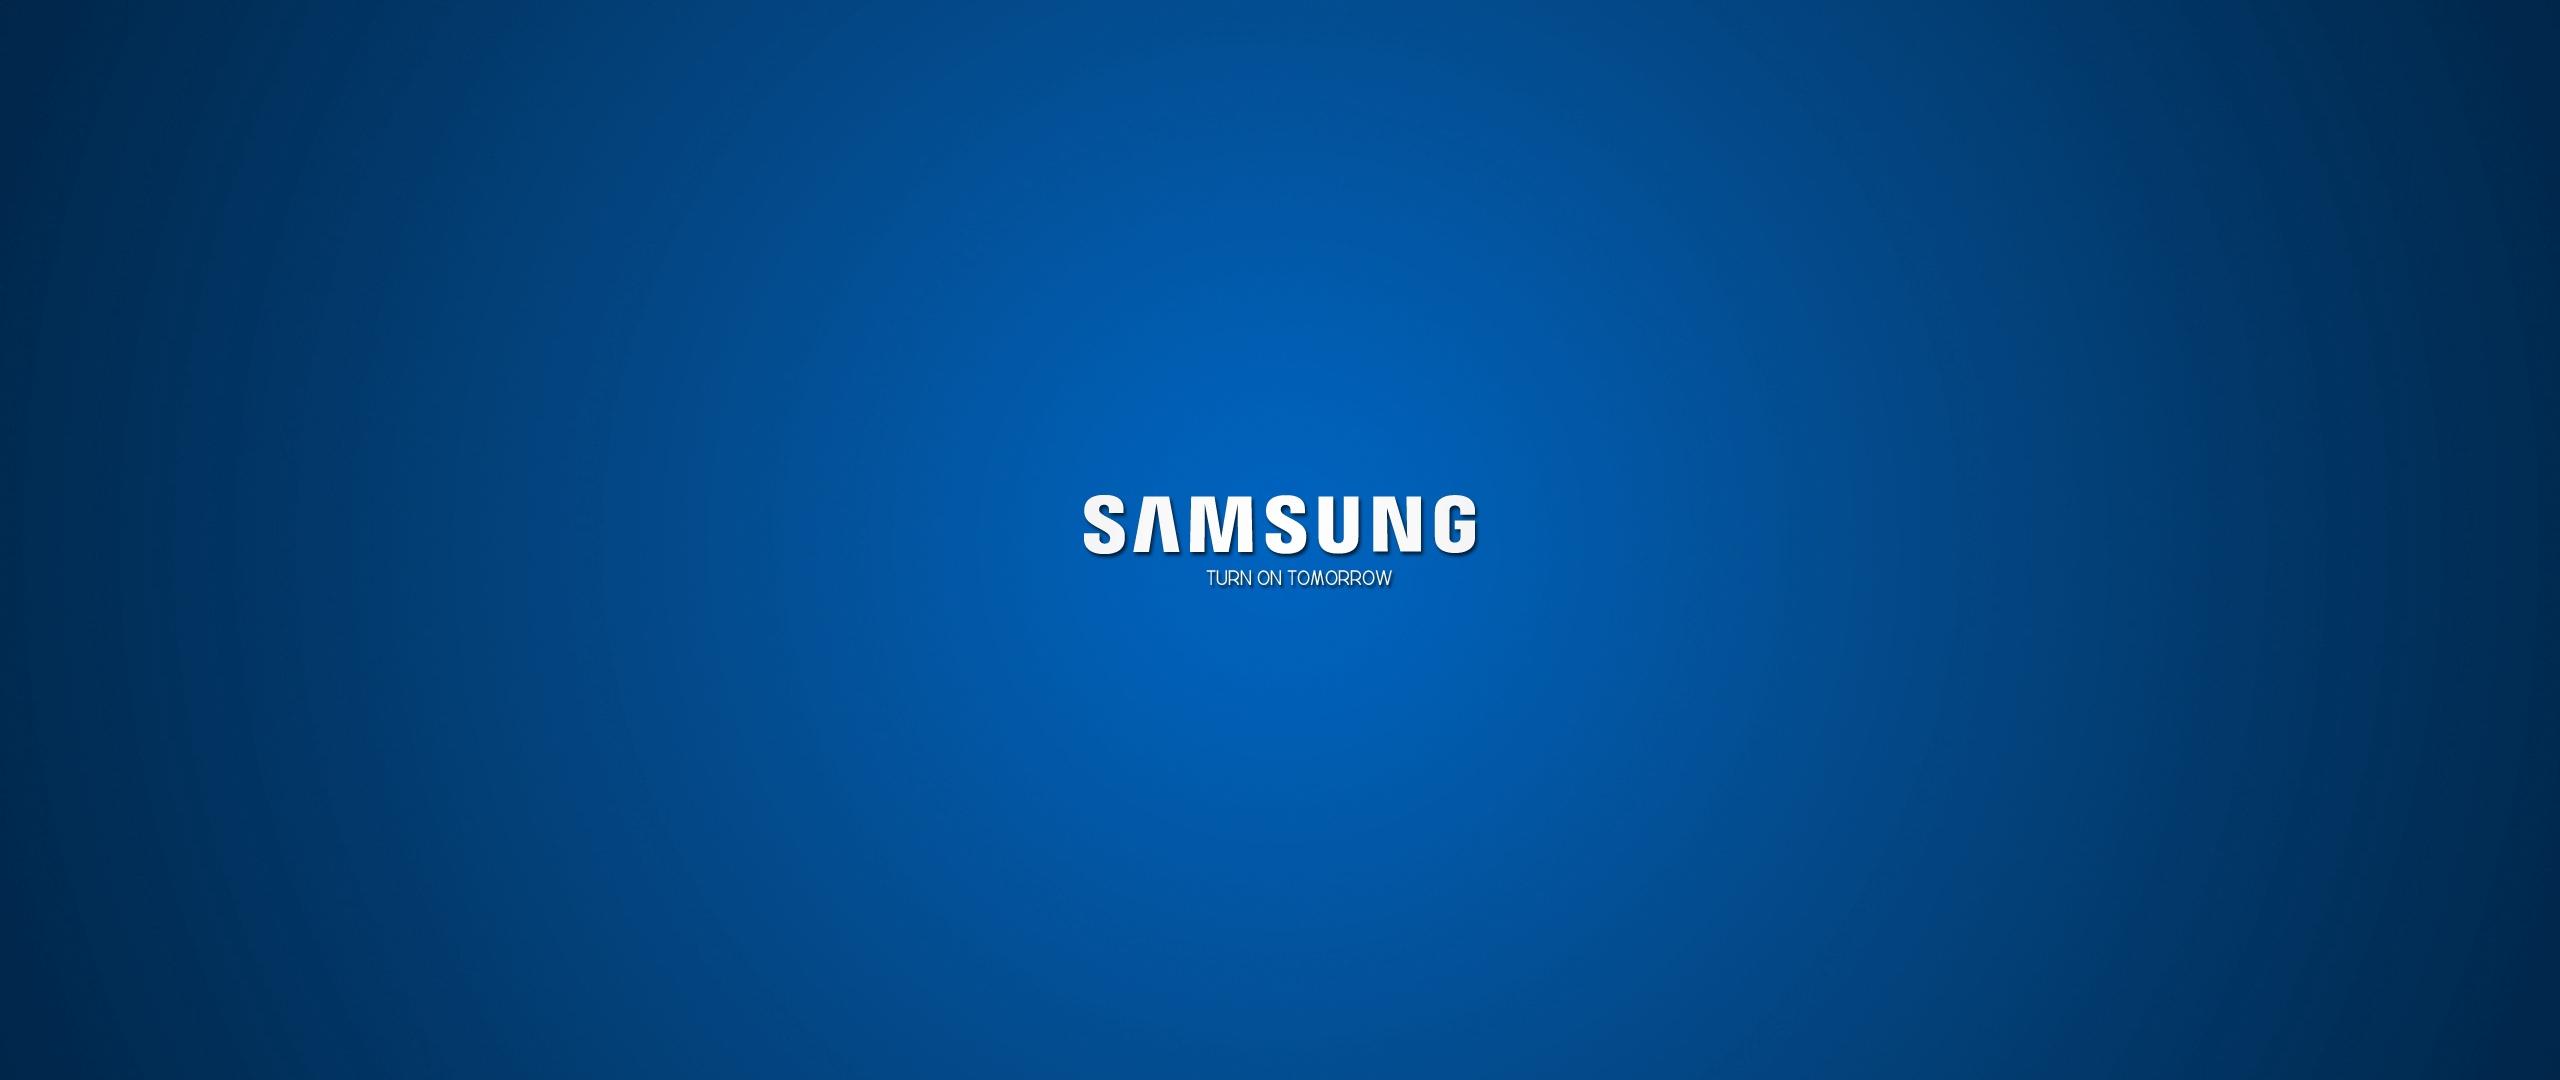 Wallpaper Samsung Company Logo Blue White Company Wallpaper Backgrounds 2560x1080 Wallpaper Teahub Io